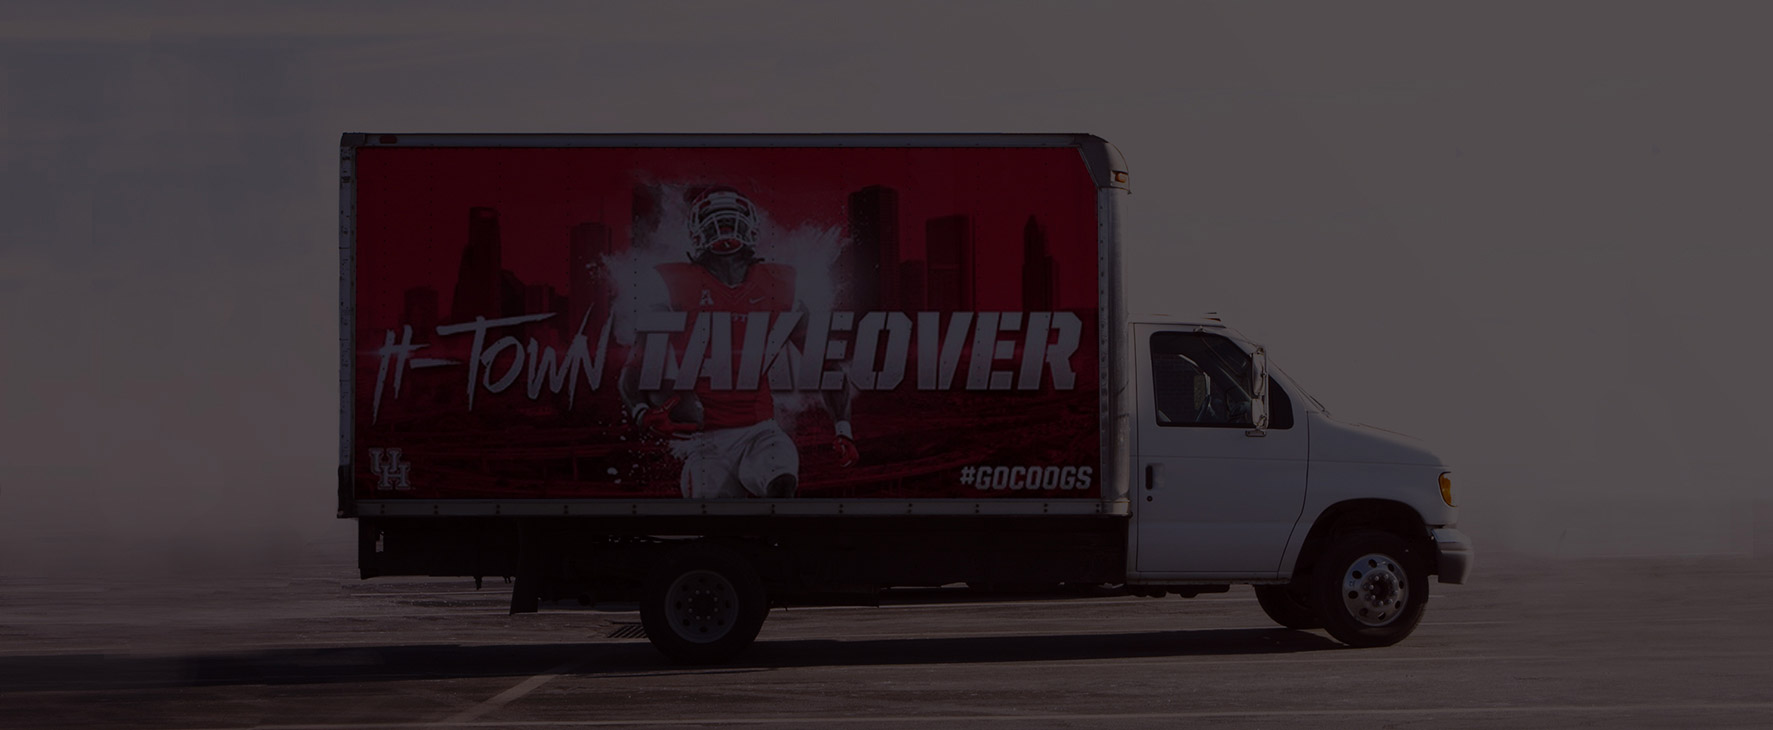 a truck with advertising on the side